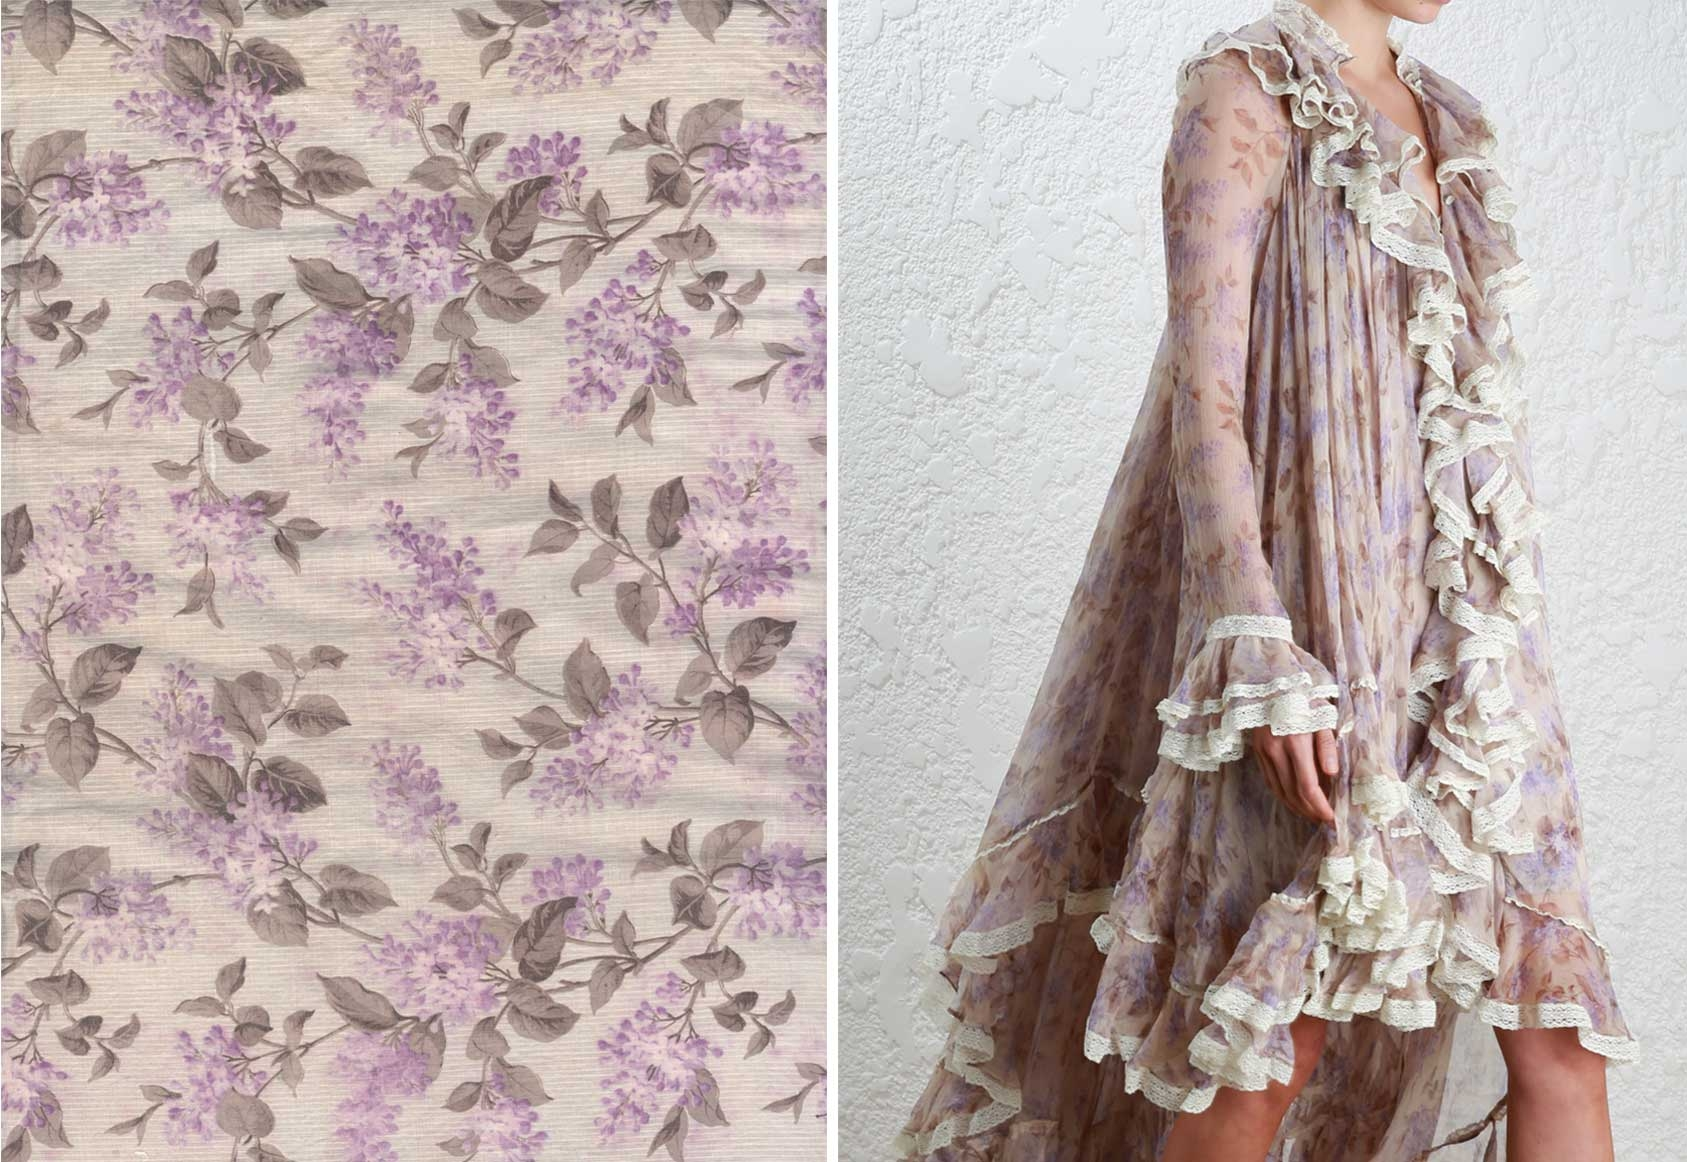 A fabric swatch and dress detail shot from our Bazaar in Bloom edit